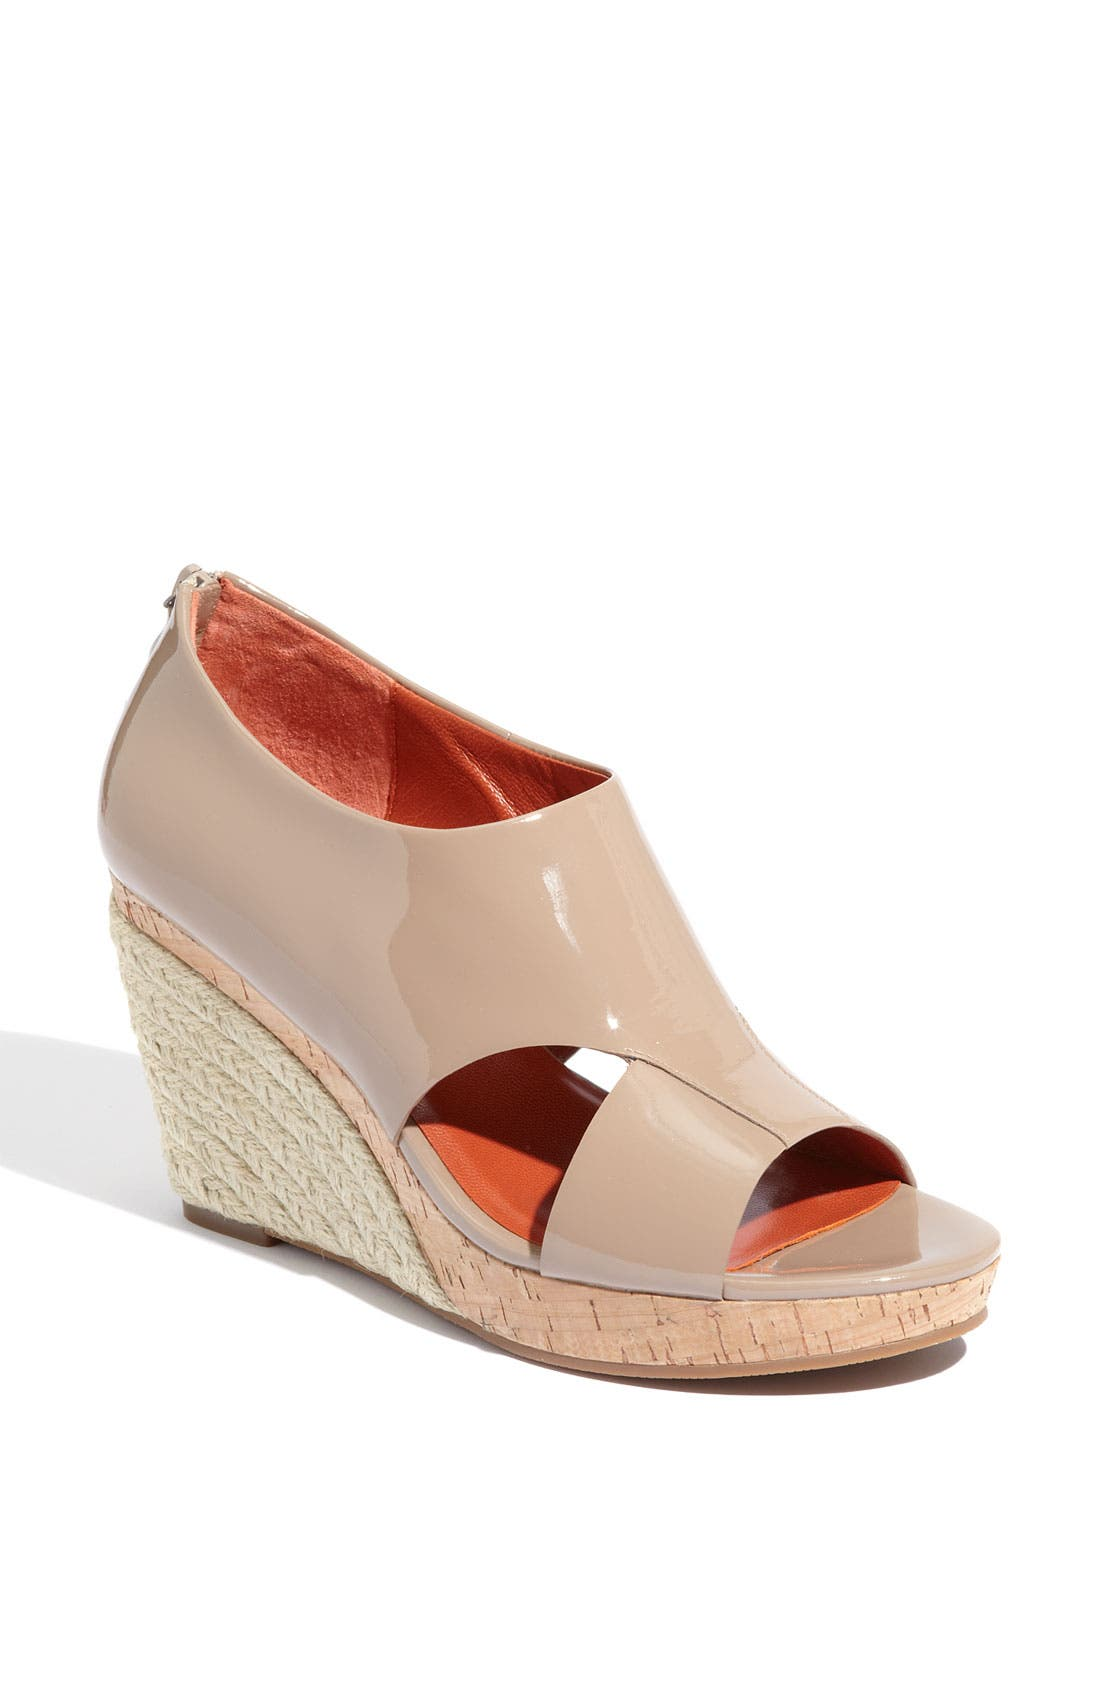 Alternate Image 1 Selected - Cole Haan 'Air Donella' Sandal